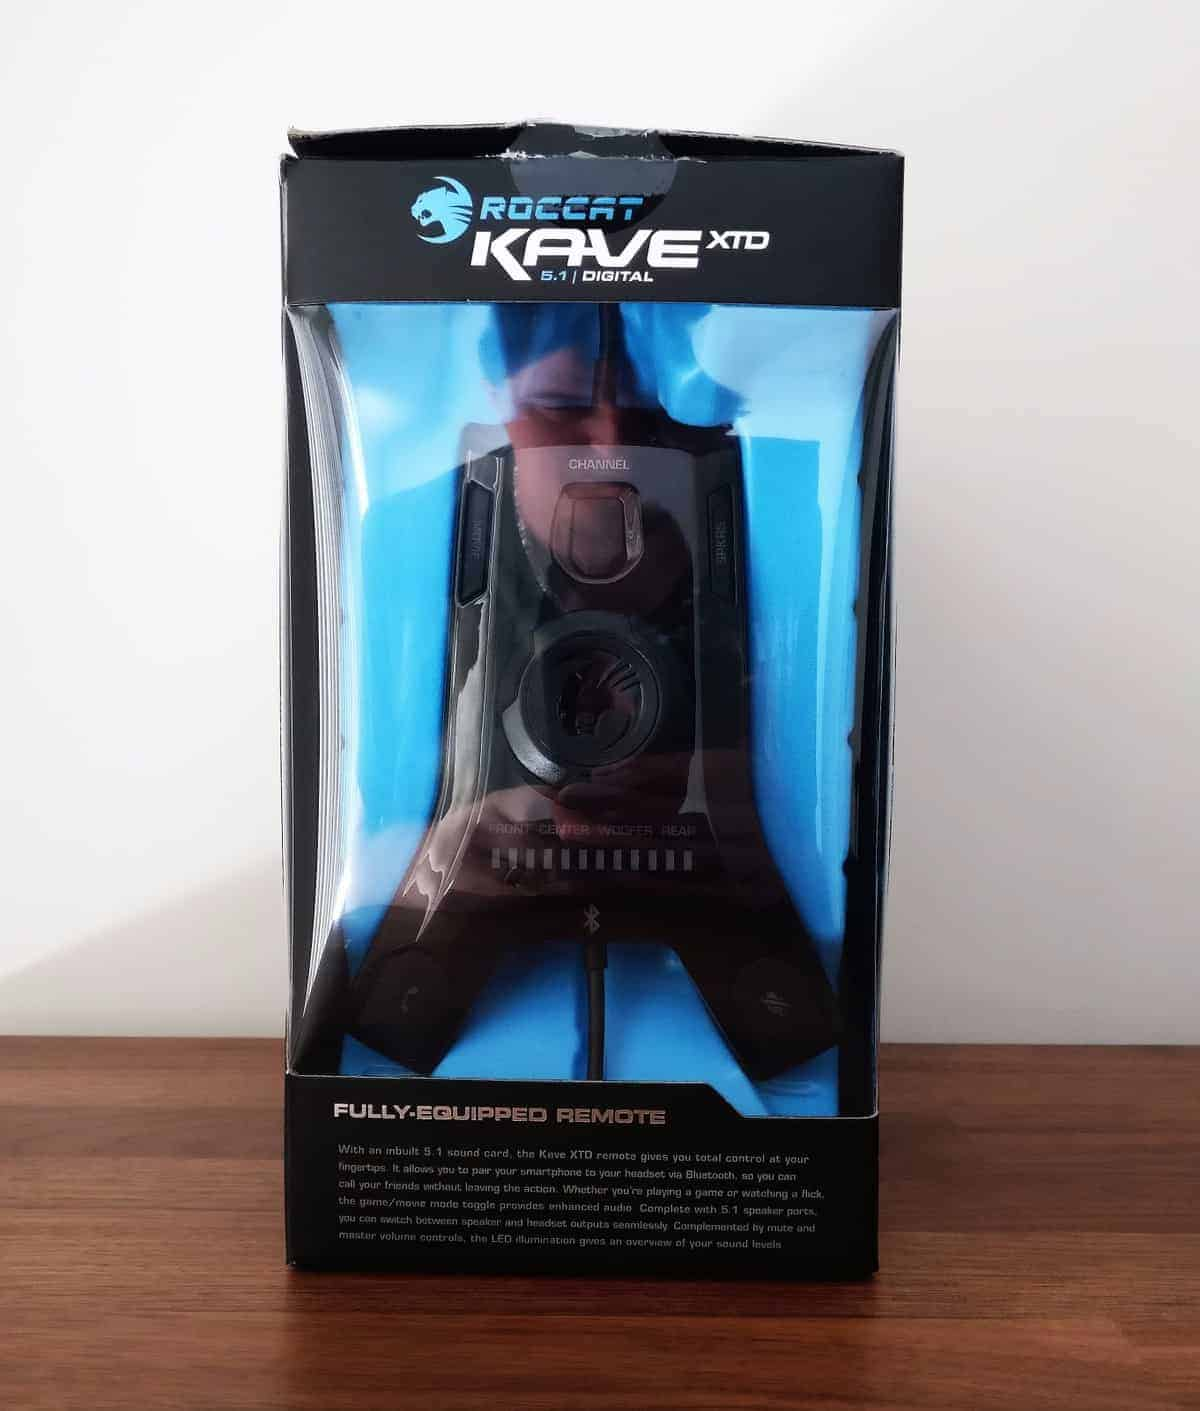 roccat-kave-photos22 Roccat Kave XTD 5.1 Digital Gaming Headset Review